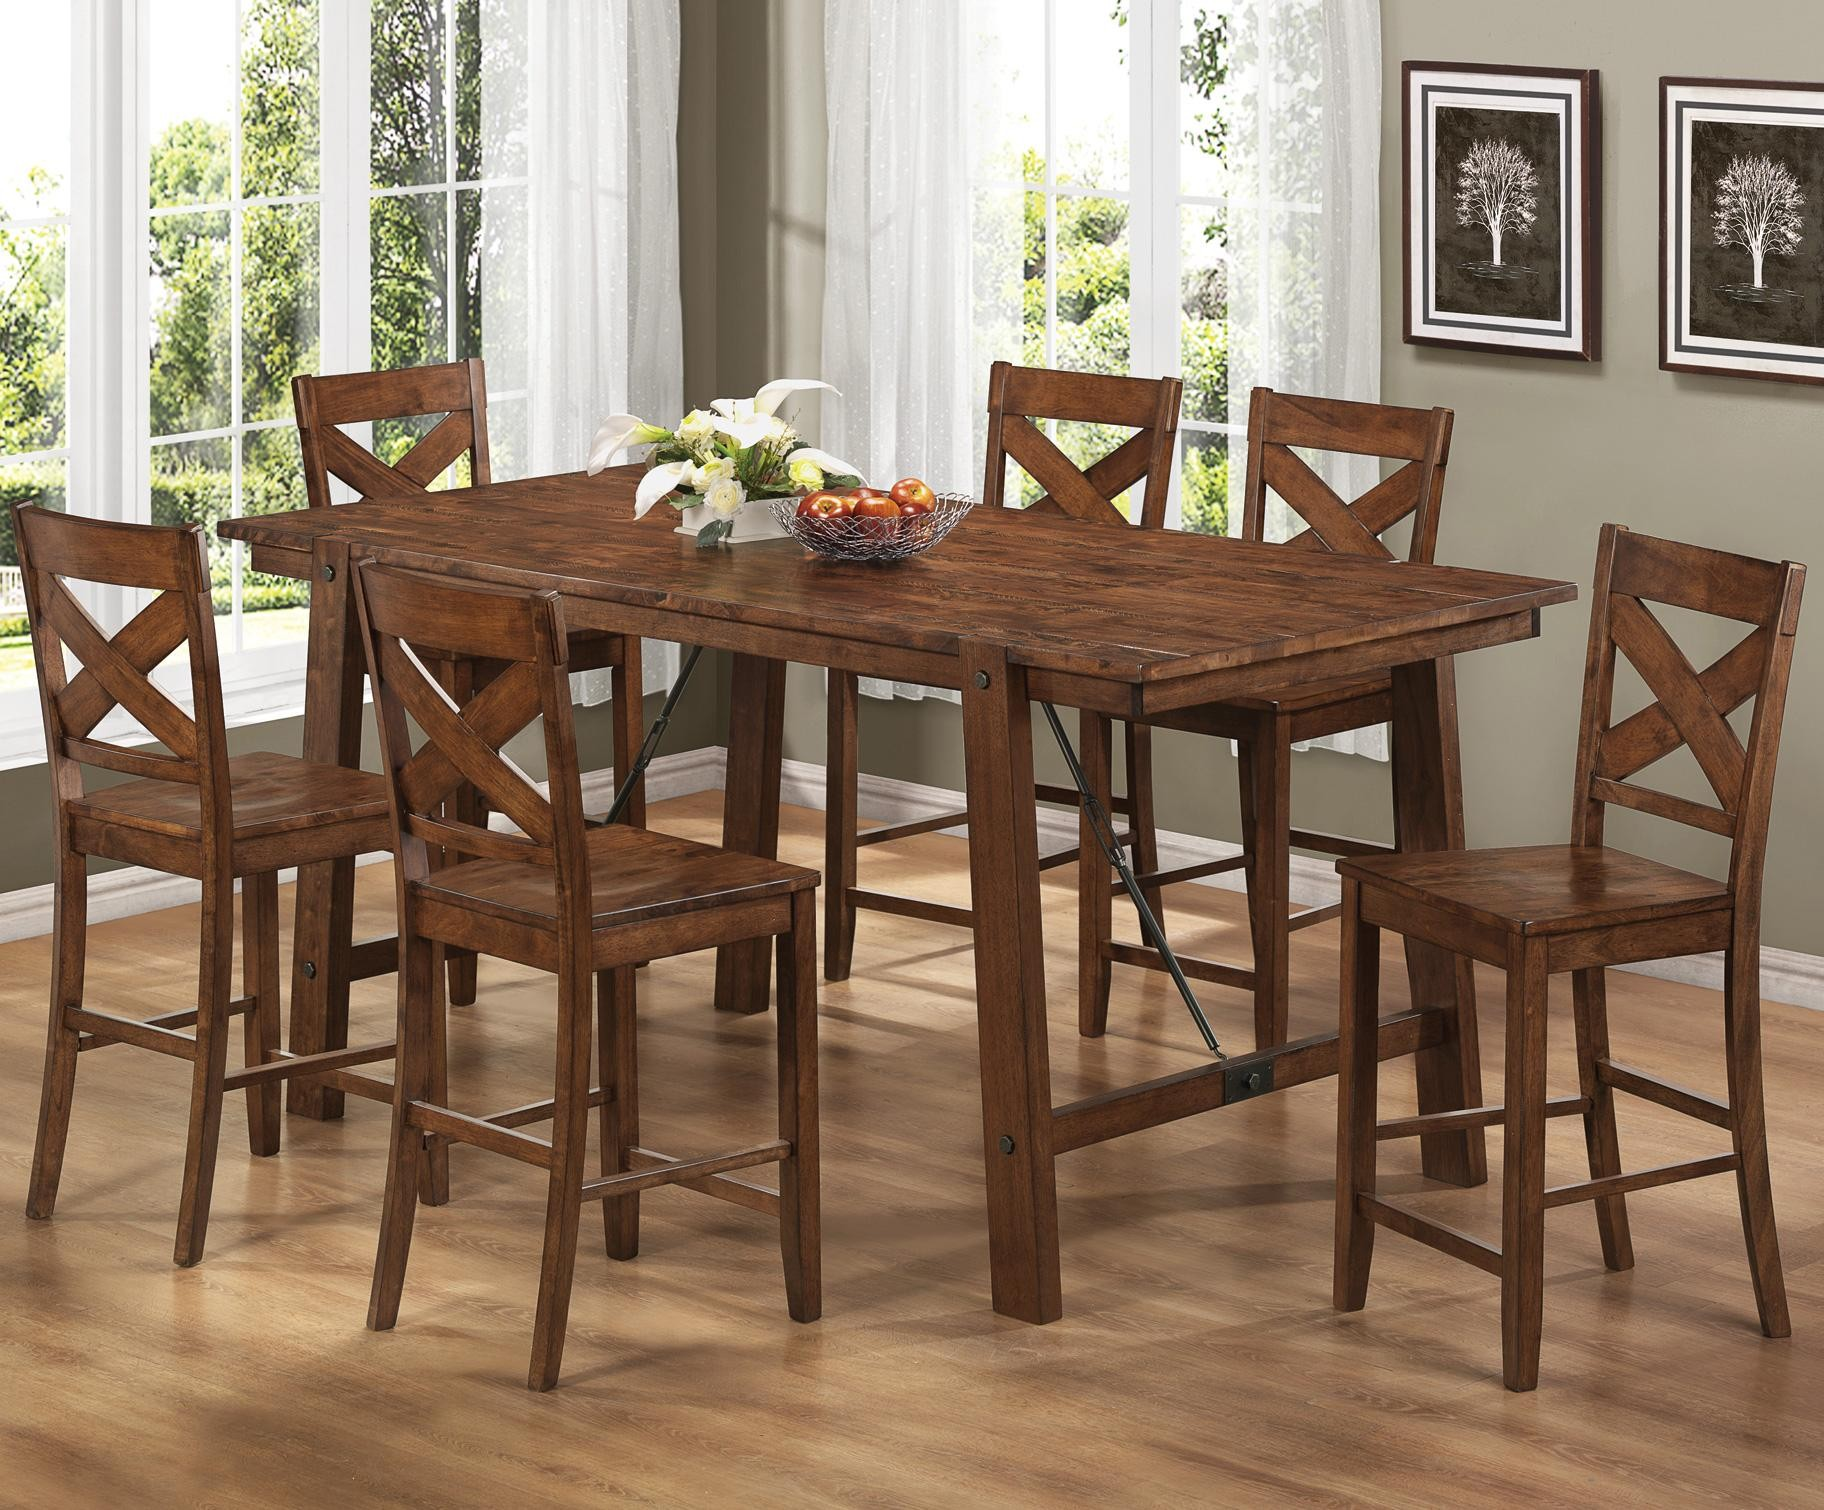 High top kitchen table sets homesfeed for Kitchen table and chairs set